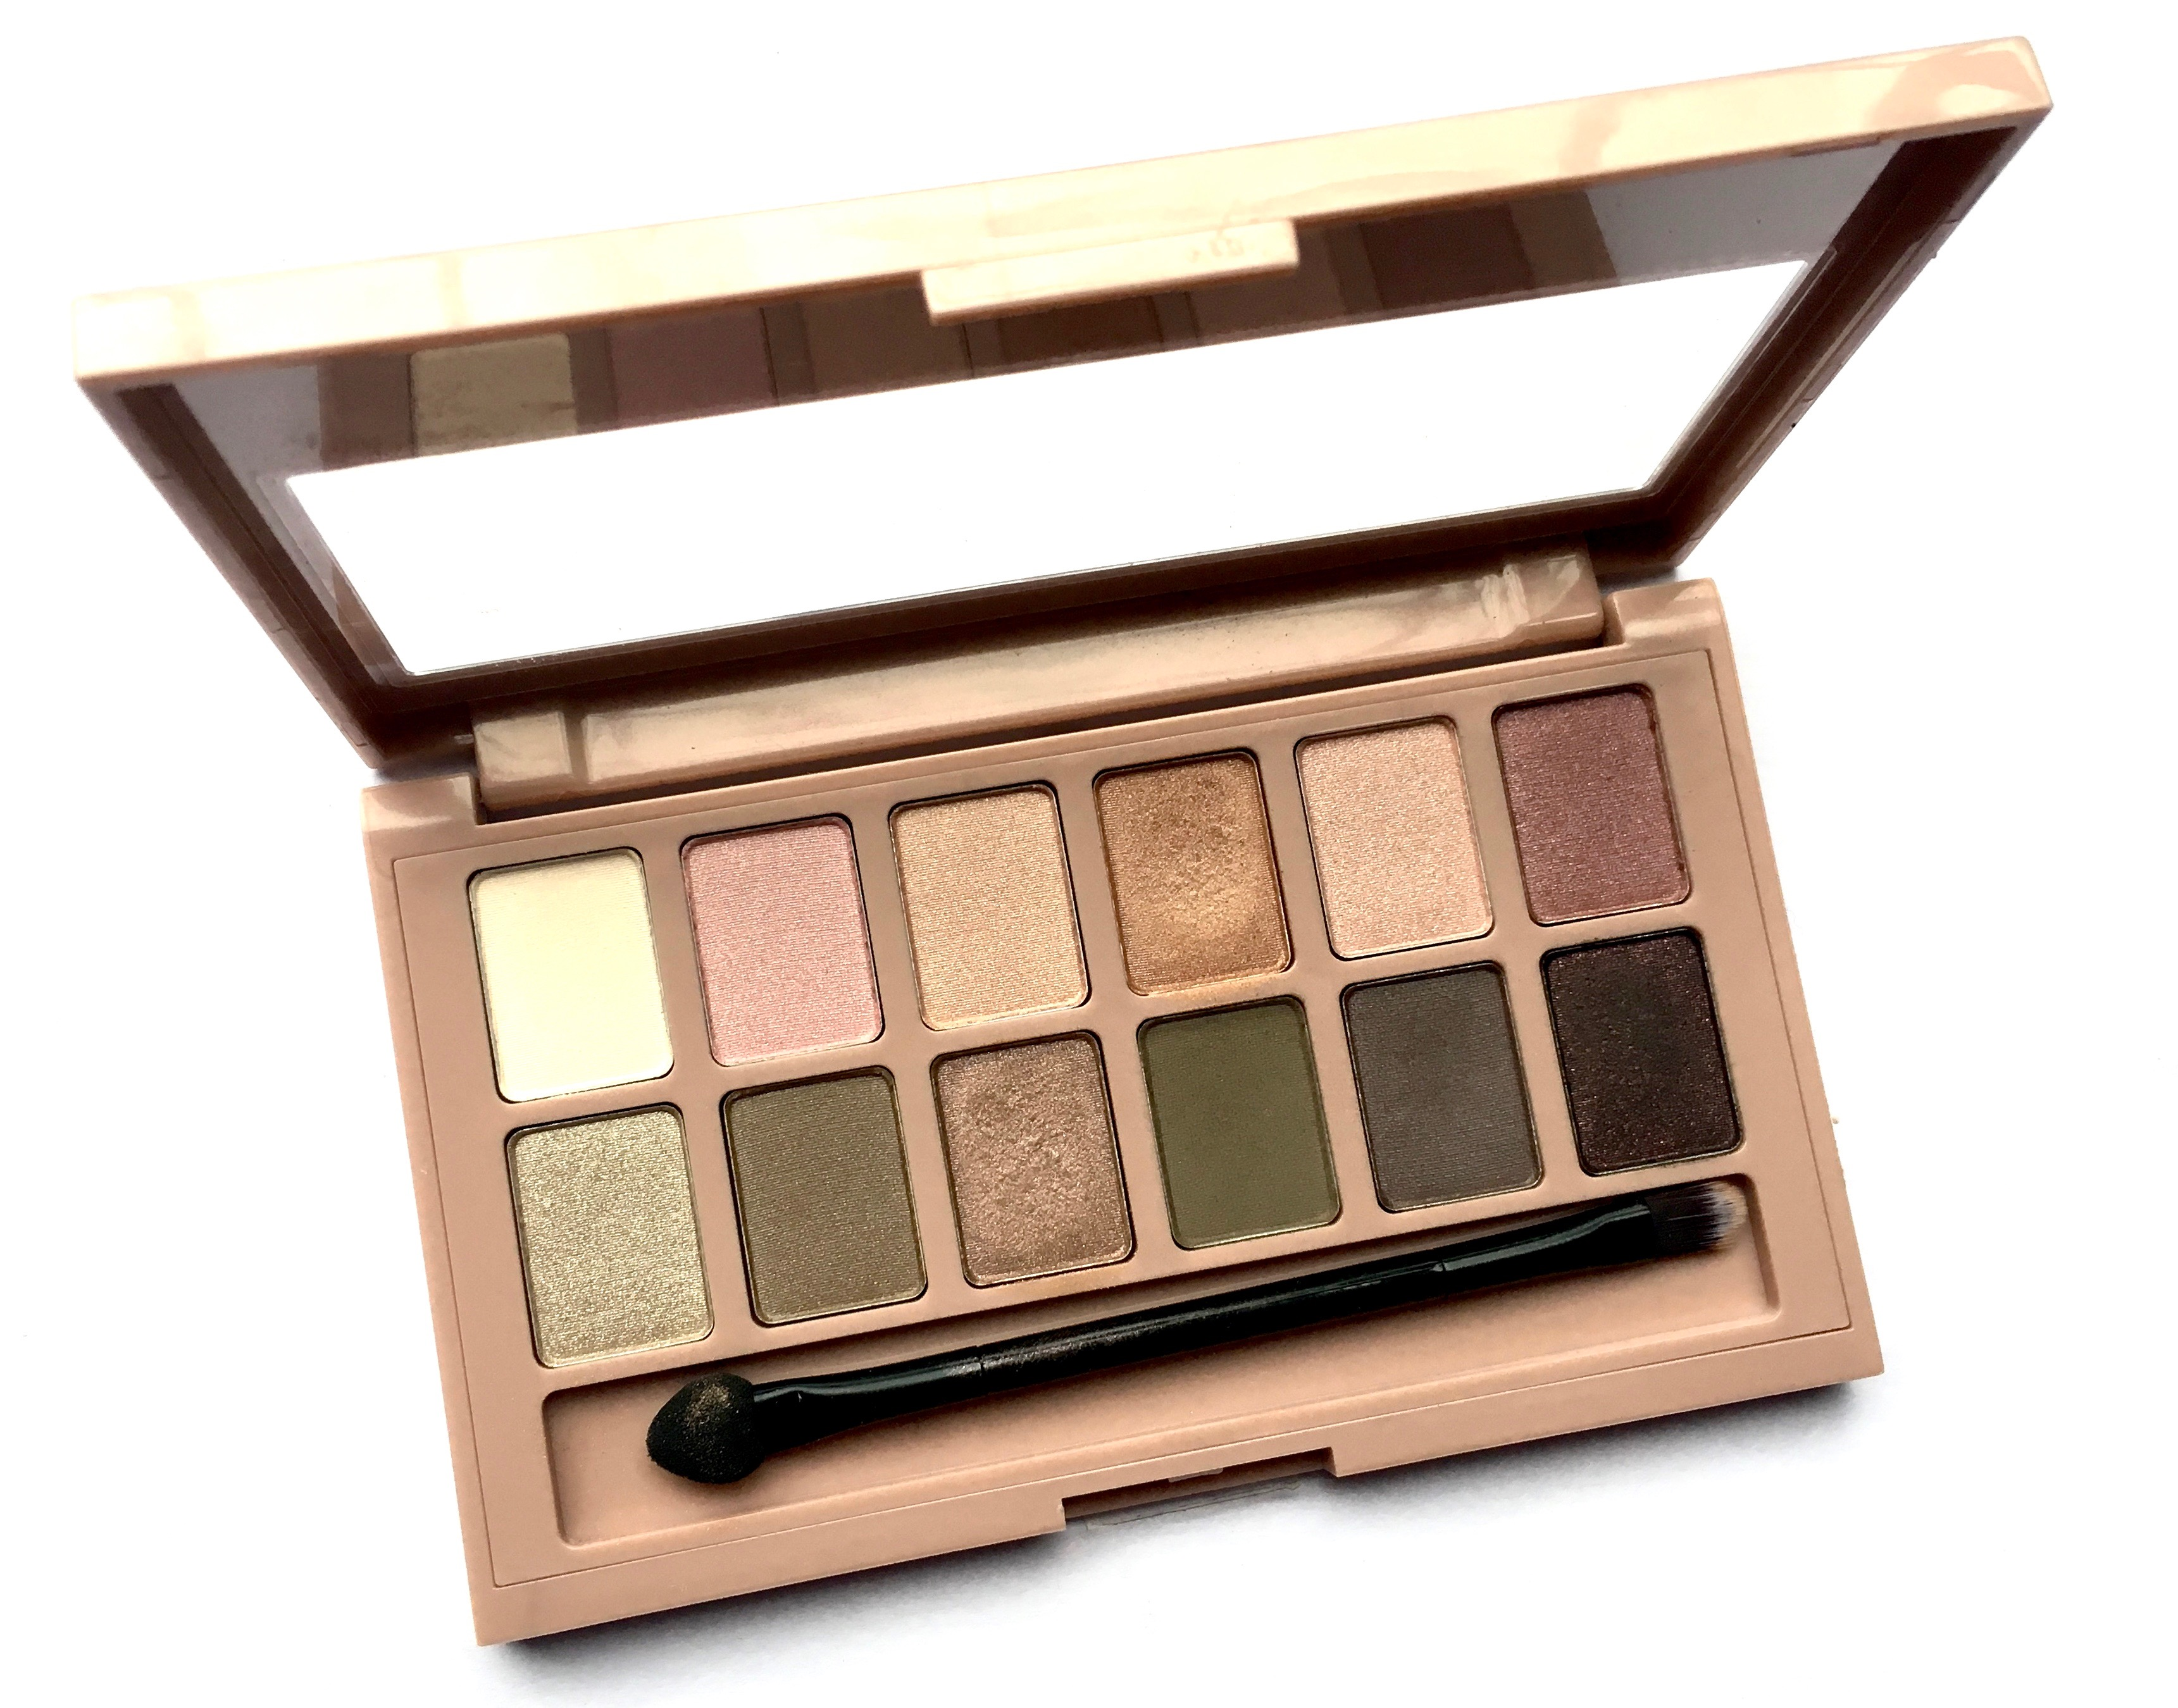 maybelline blushed nudes palette review